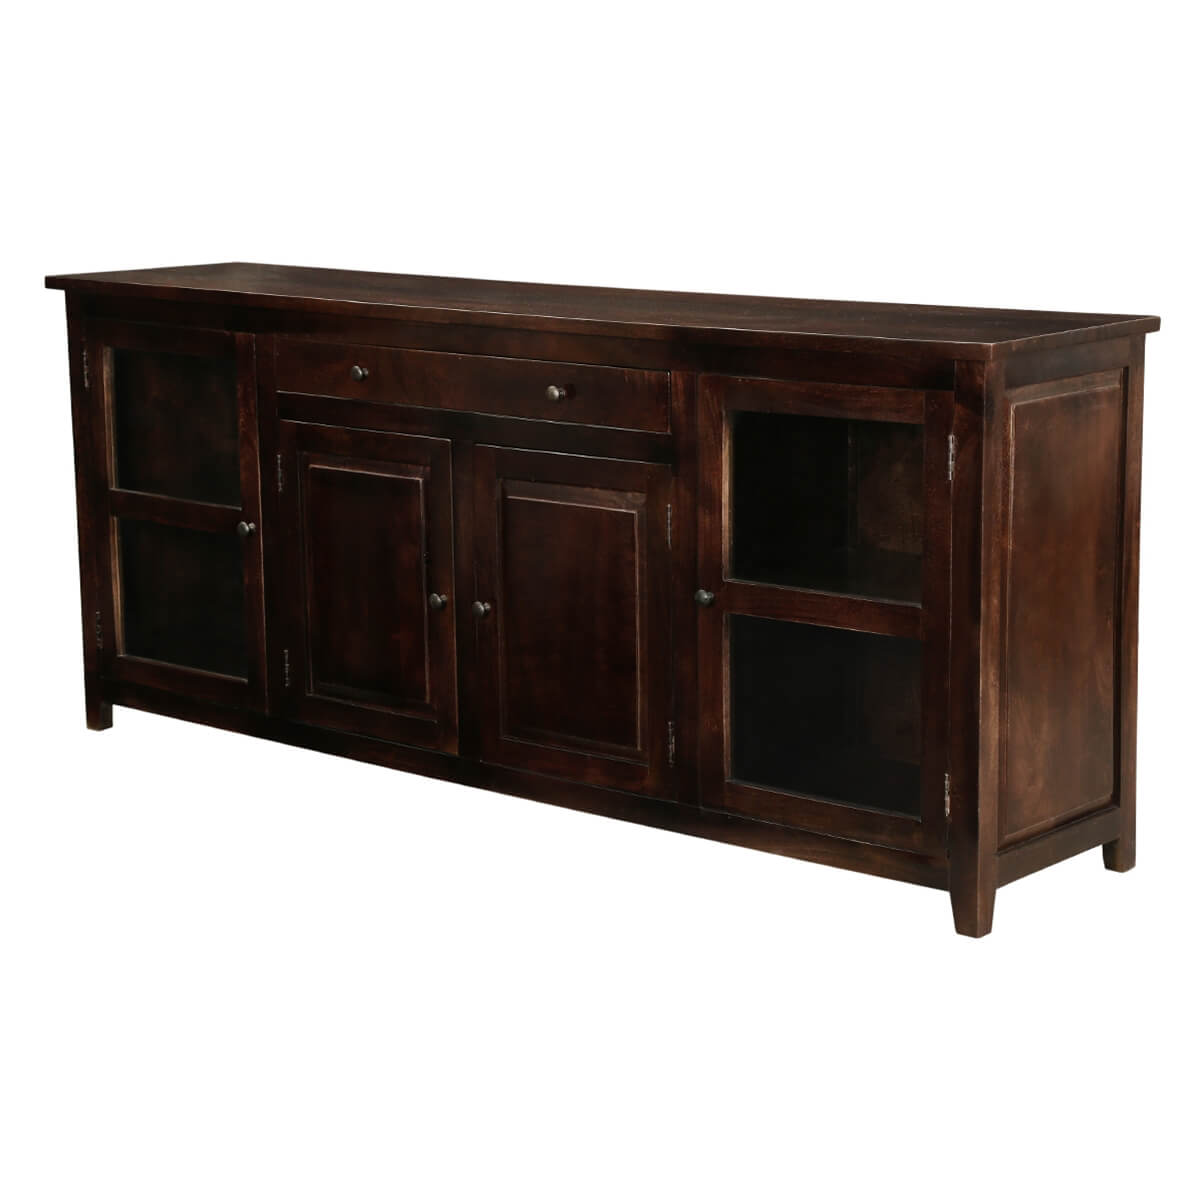 arts and crafts sideboard grays 303 year of clean water rh yearofcleanwater org